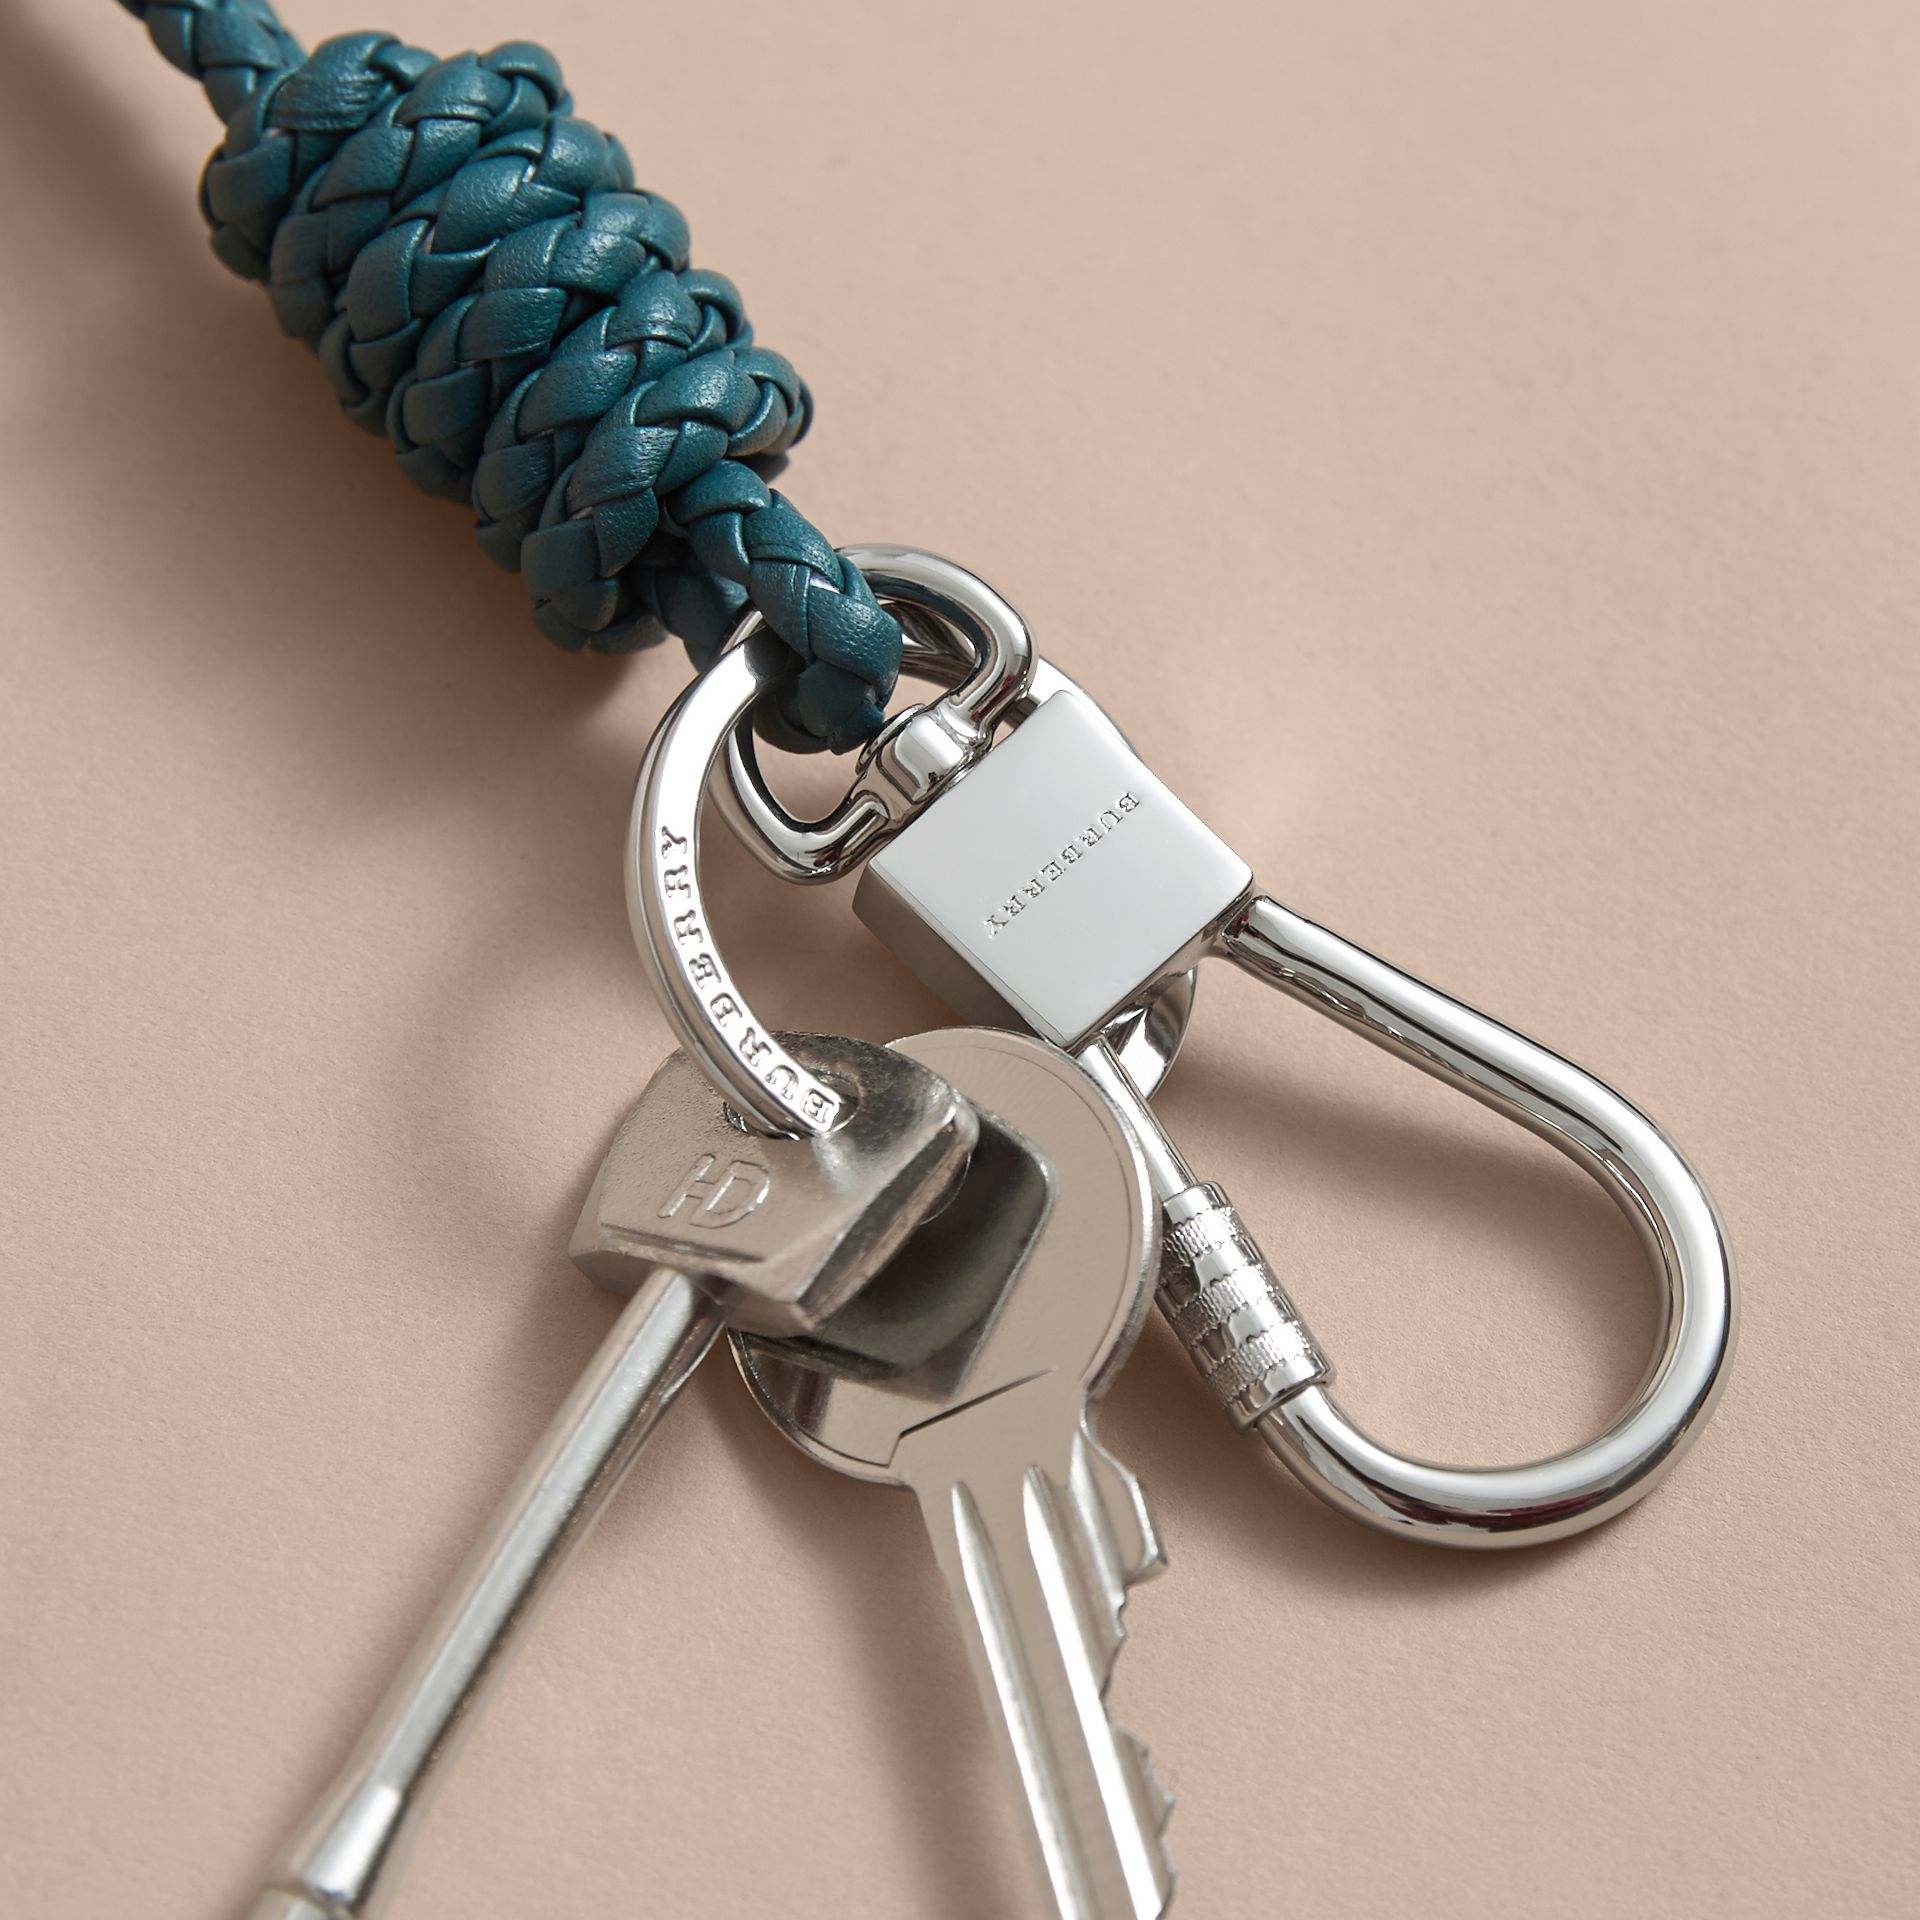 Braided Leather Knot Key Ring in Dark Teal - Men | Burberry - gallery image 3